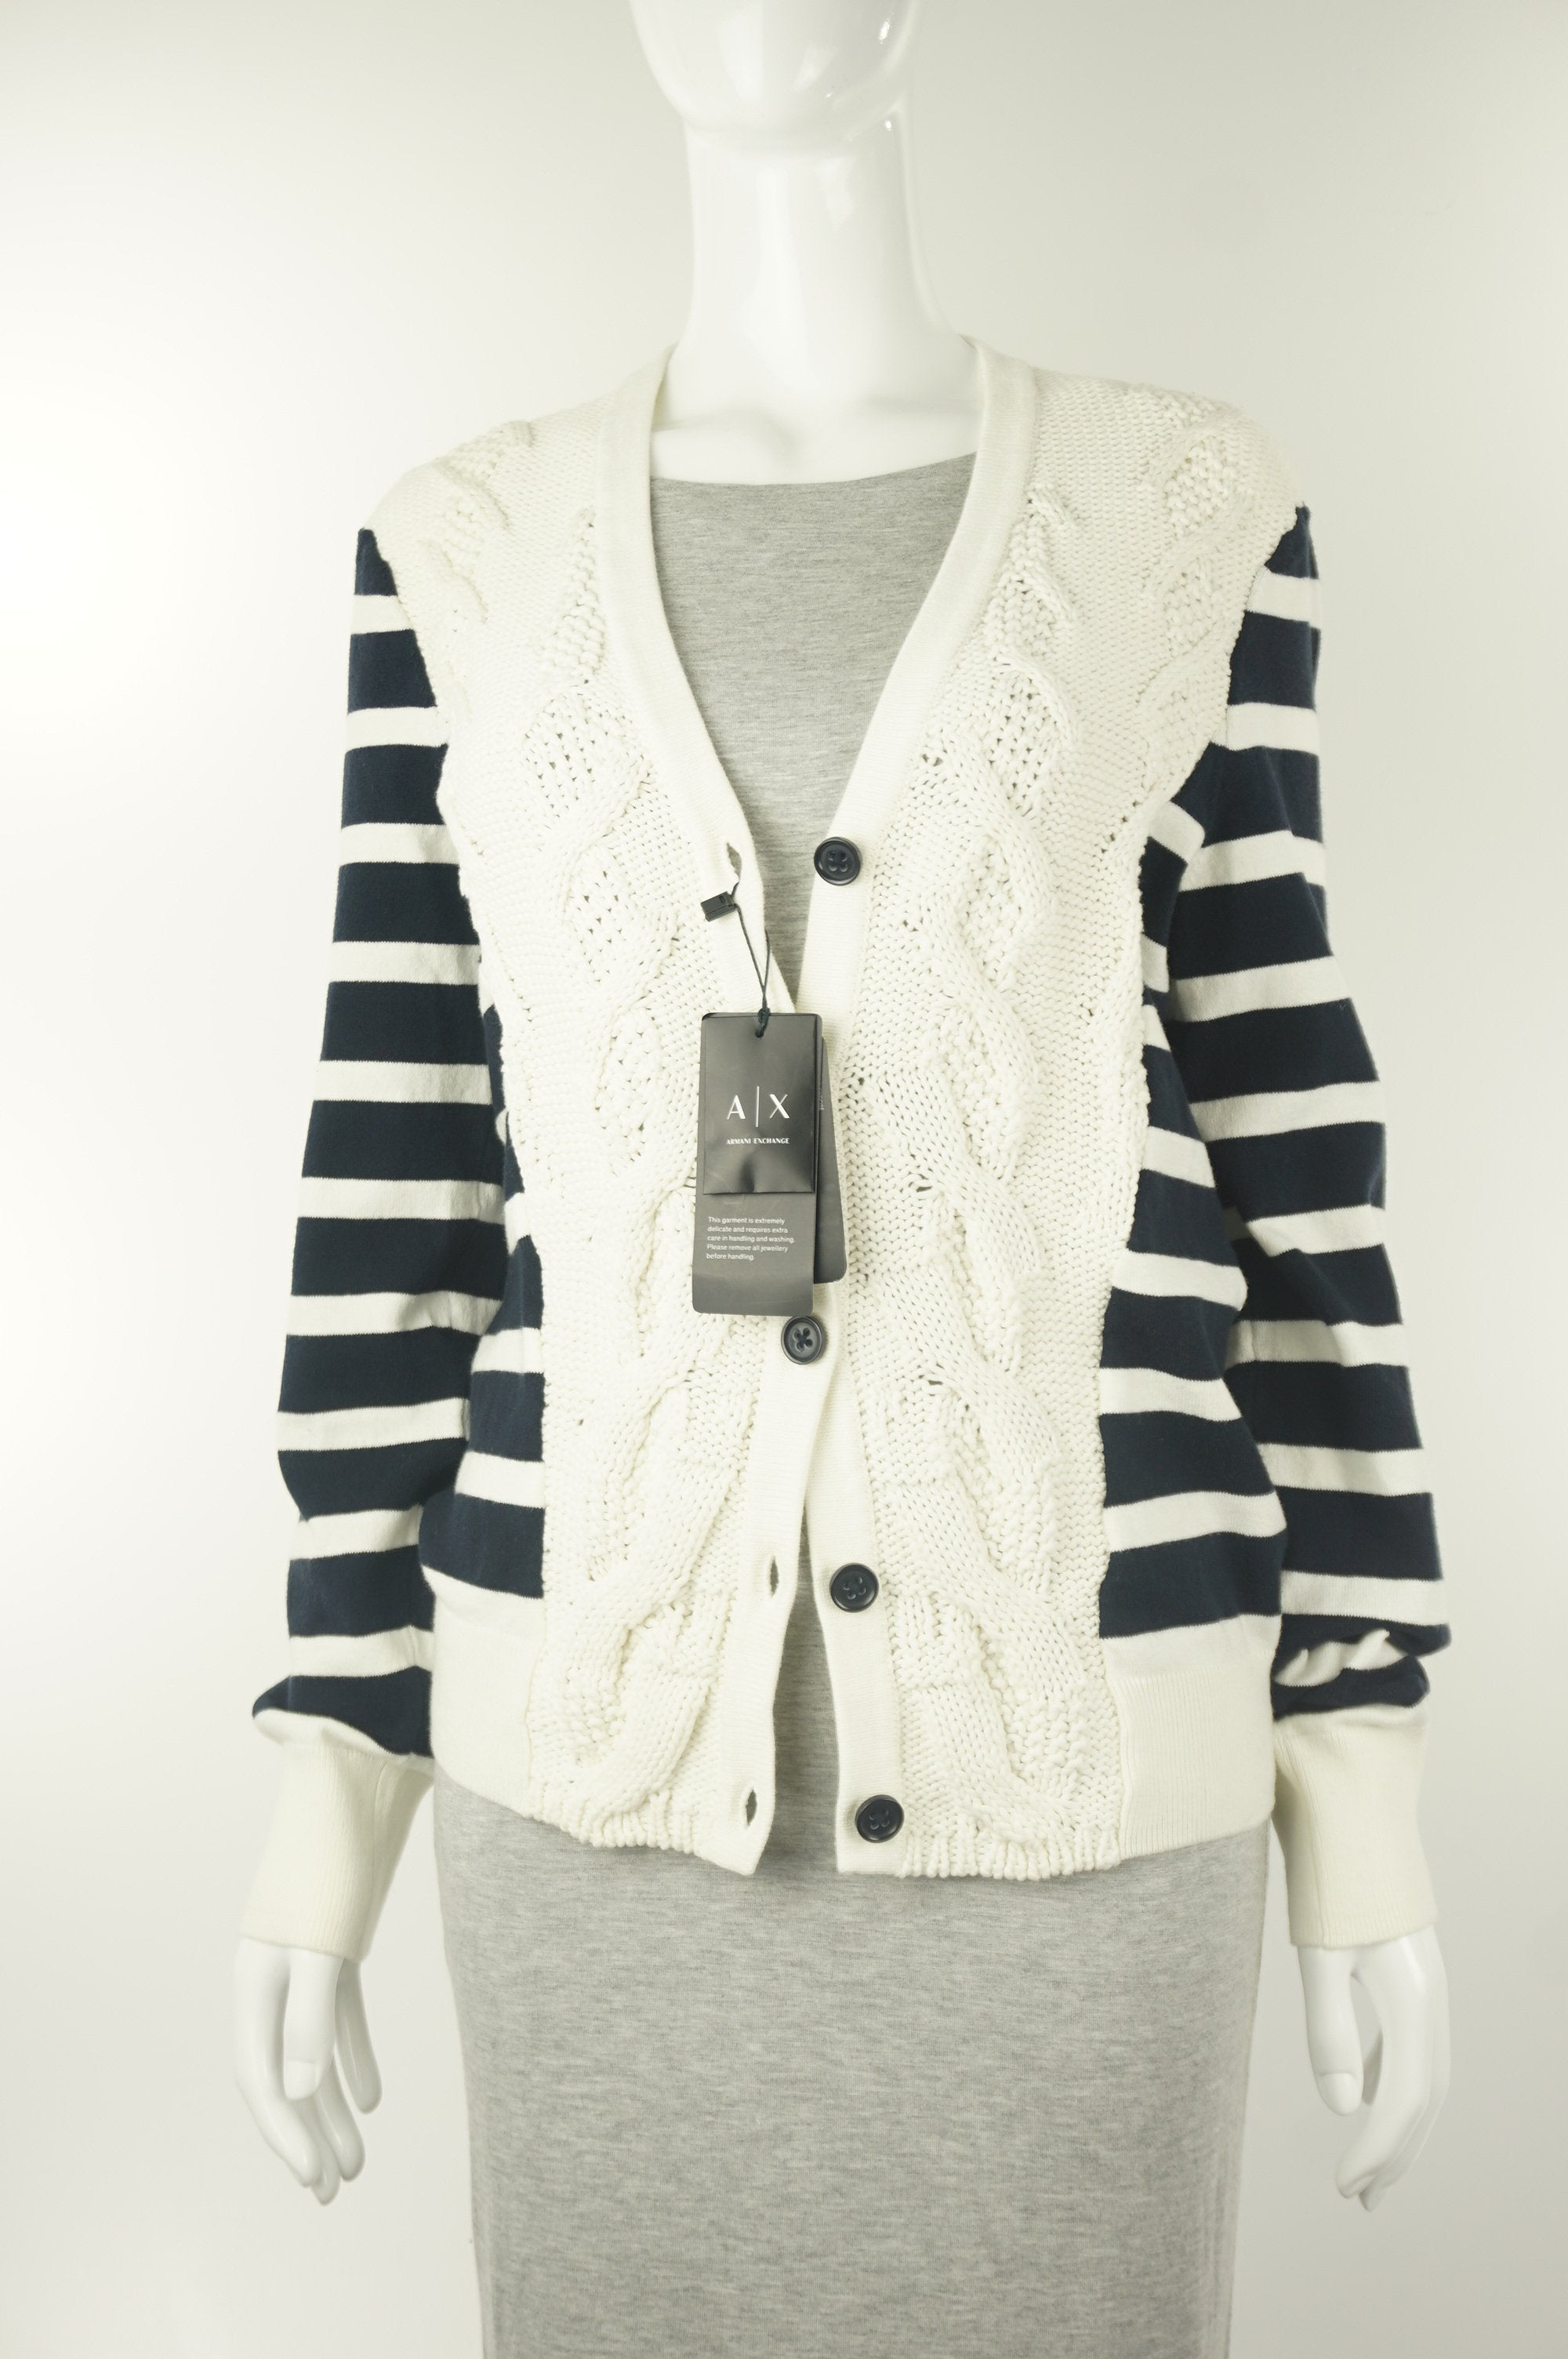 A|X Armani Exchange Short Cardigan, Knitted cardigan from A|X. Tag still on., Blue, White, 80% cotton, 18% polyamide, 2% elastane, women's Jackets & Coats, women's Blue, White Jackets & Coats, A|X Armani Exchange women's Jackets & Coats, armarni exchange cardigan, women's cardigan